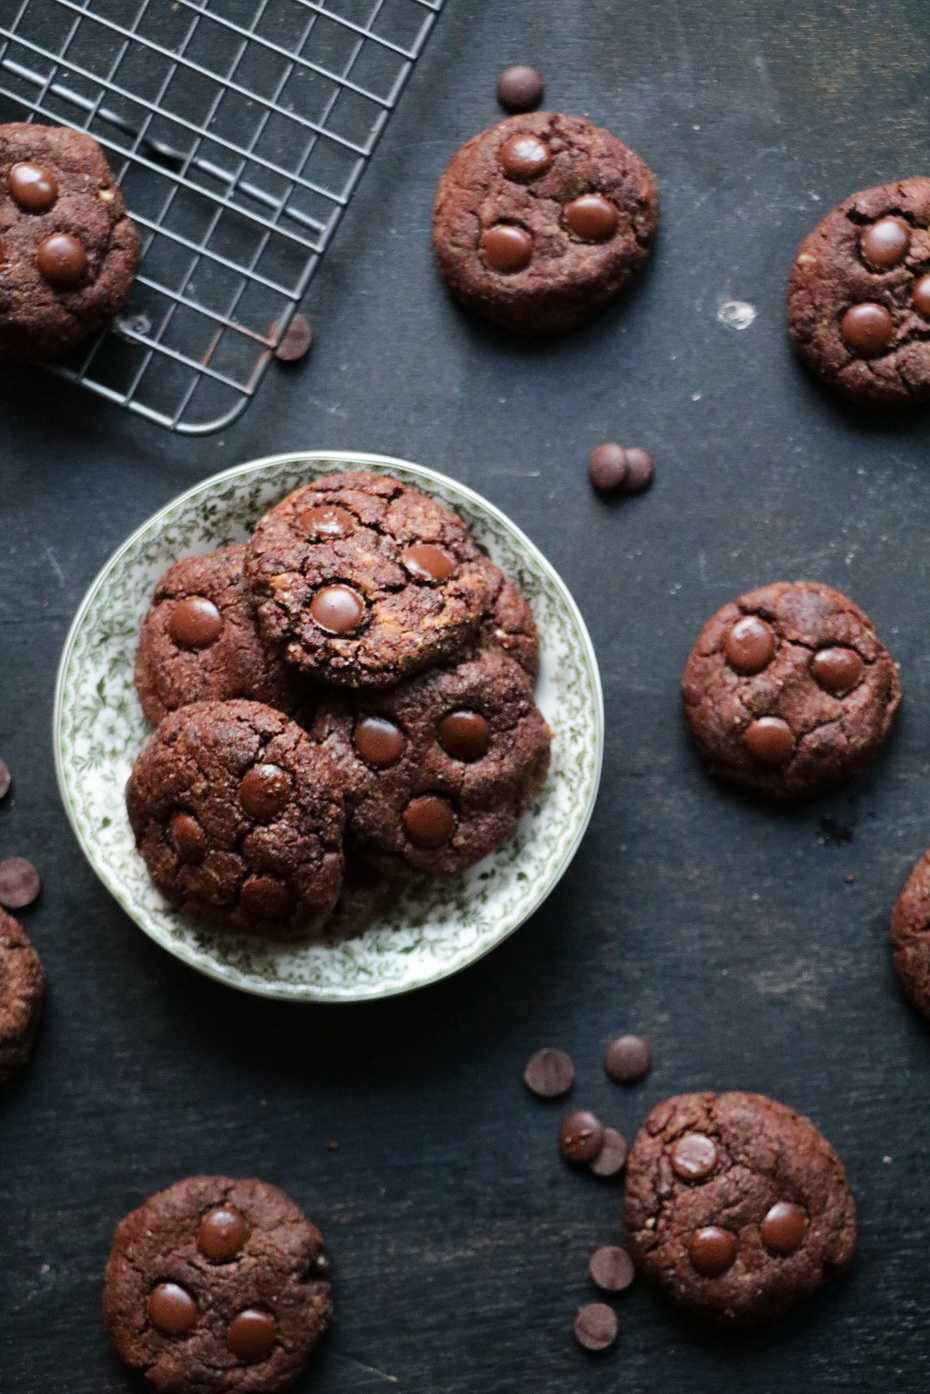 PALEO CHEWY CHOCOLATE PEANUT BUTTER COOKIES